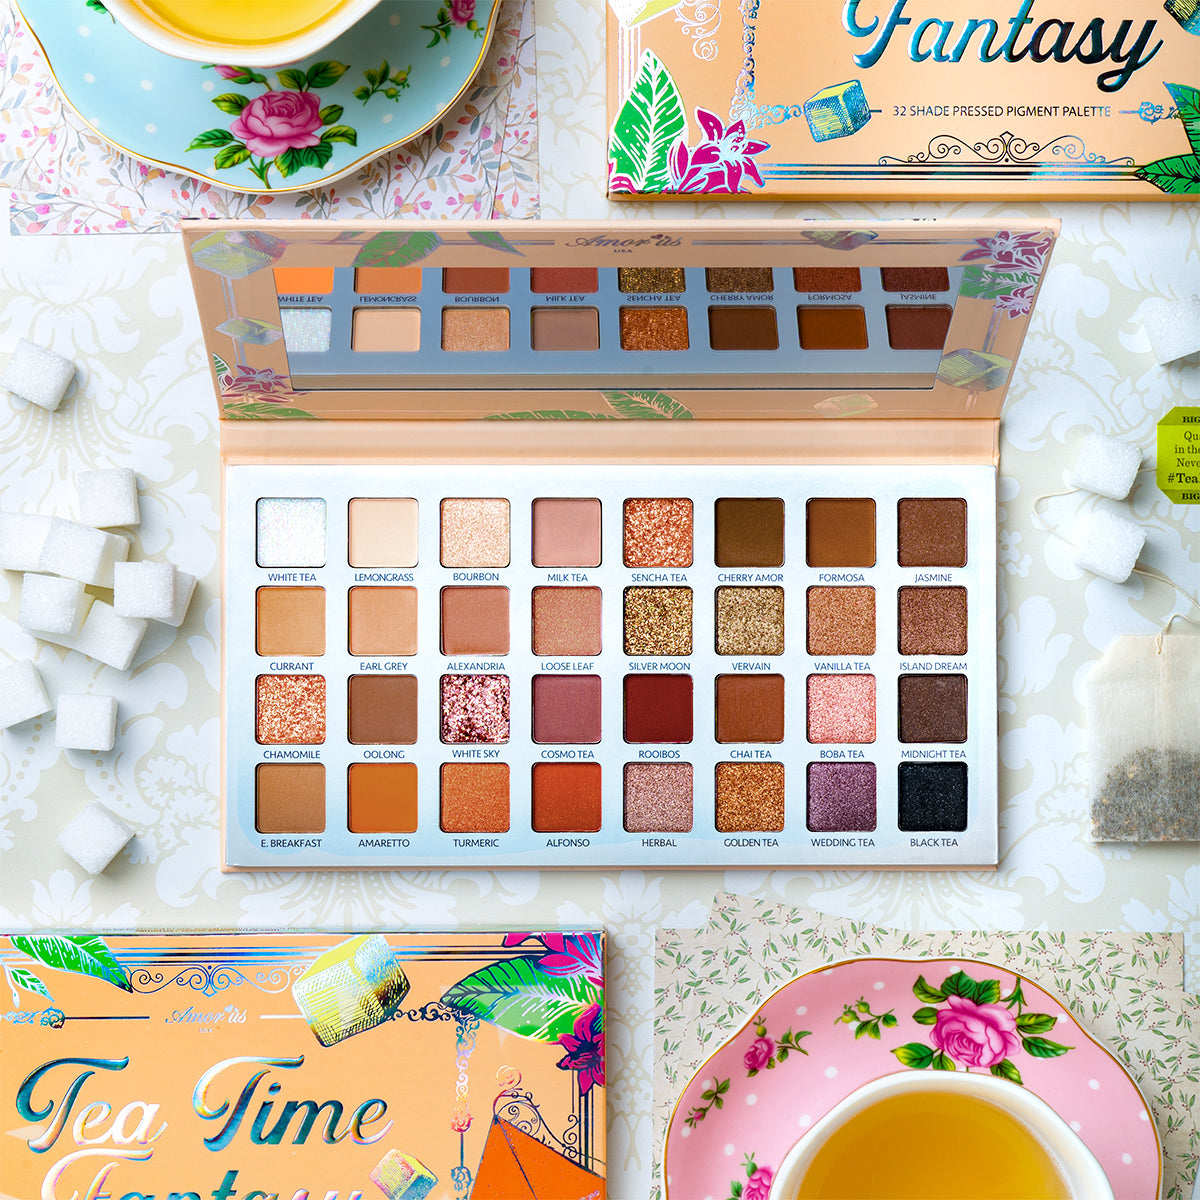 Amorus USA Everyday Natural Looks Neutral Smooth Creamy Blendable Ultra-Pigmented Effortless Teatime Fantasy 32 Shade Amor us